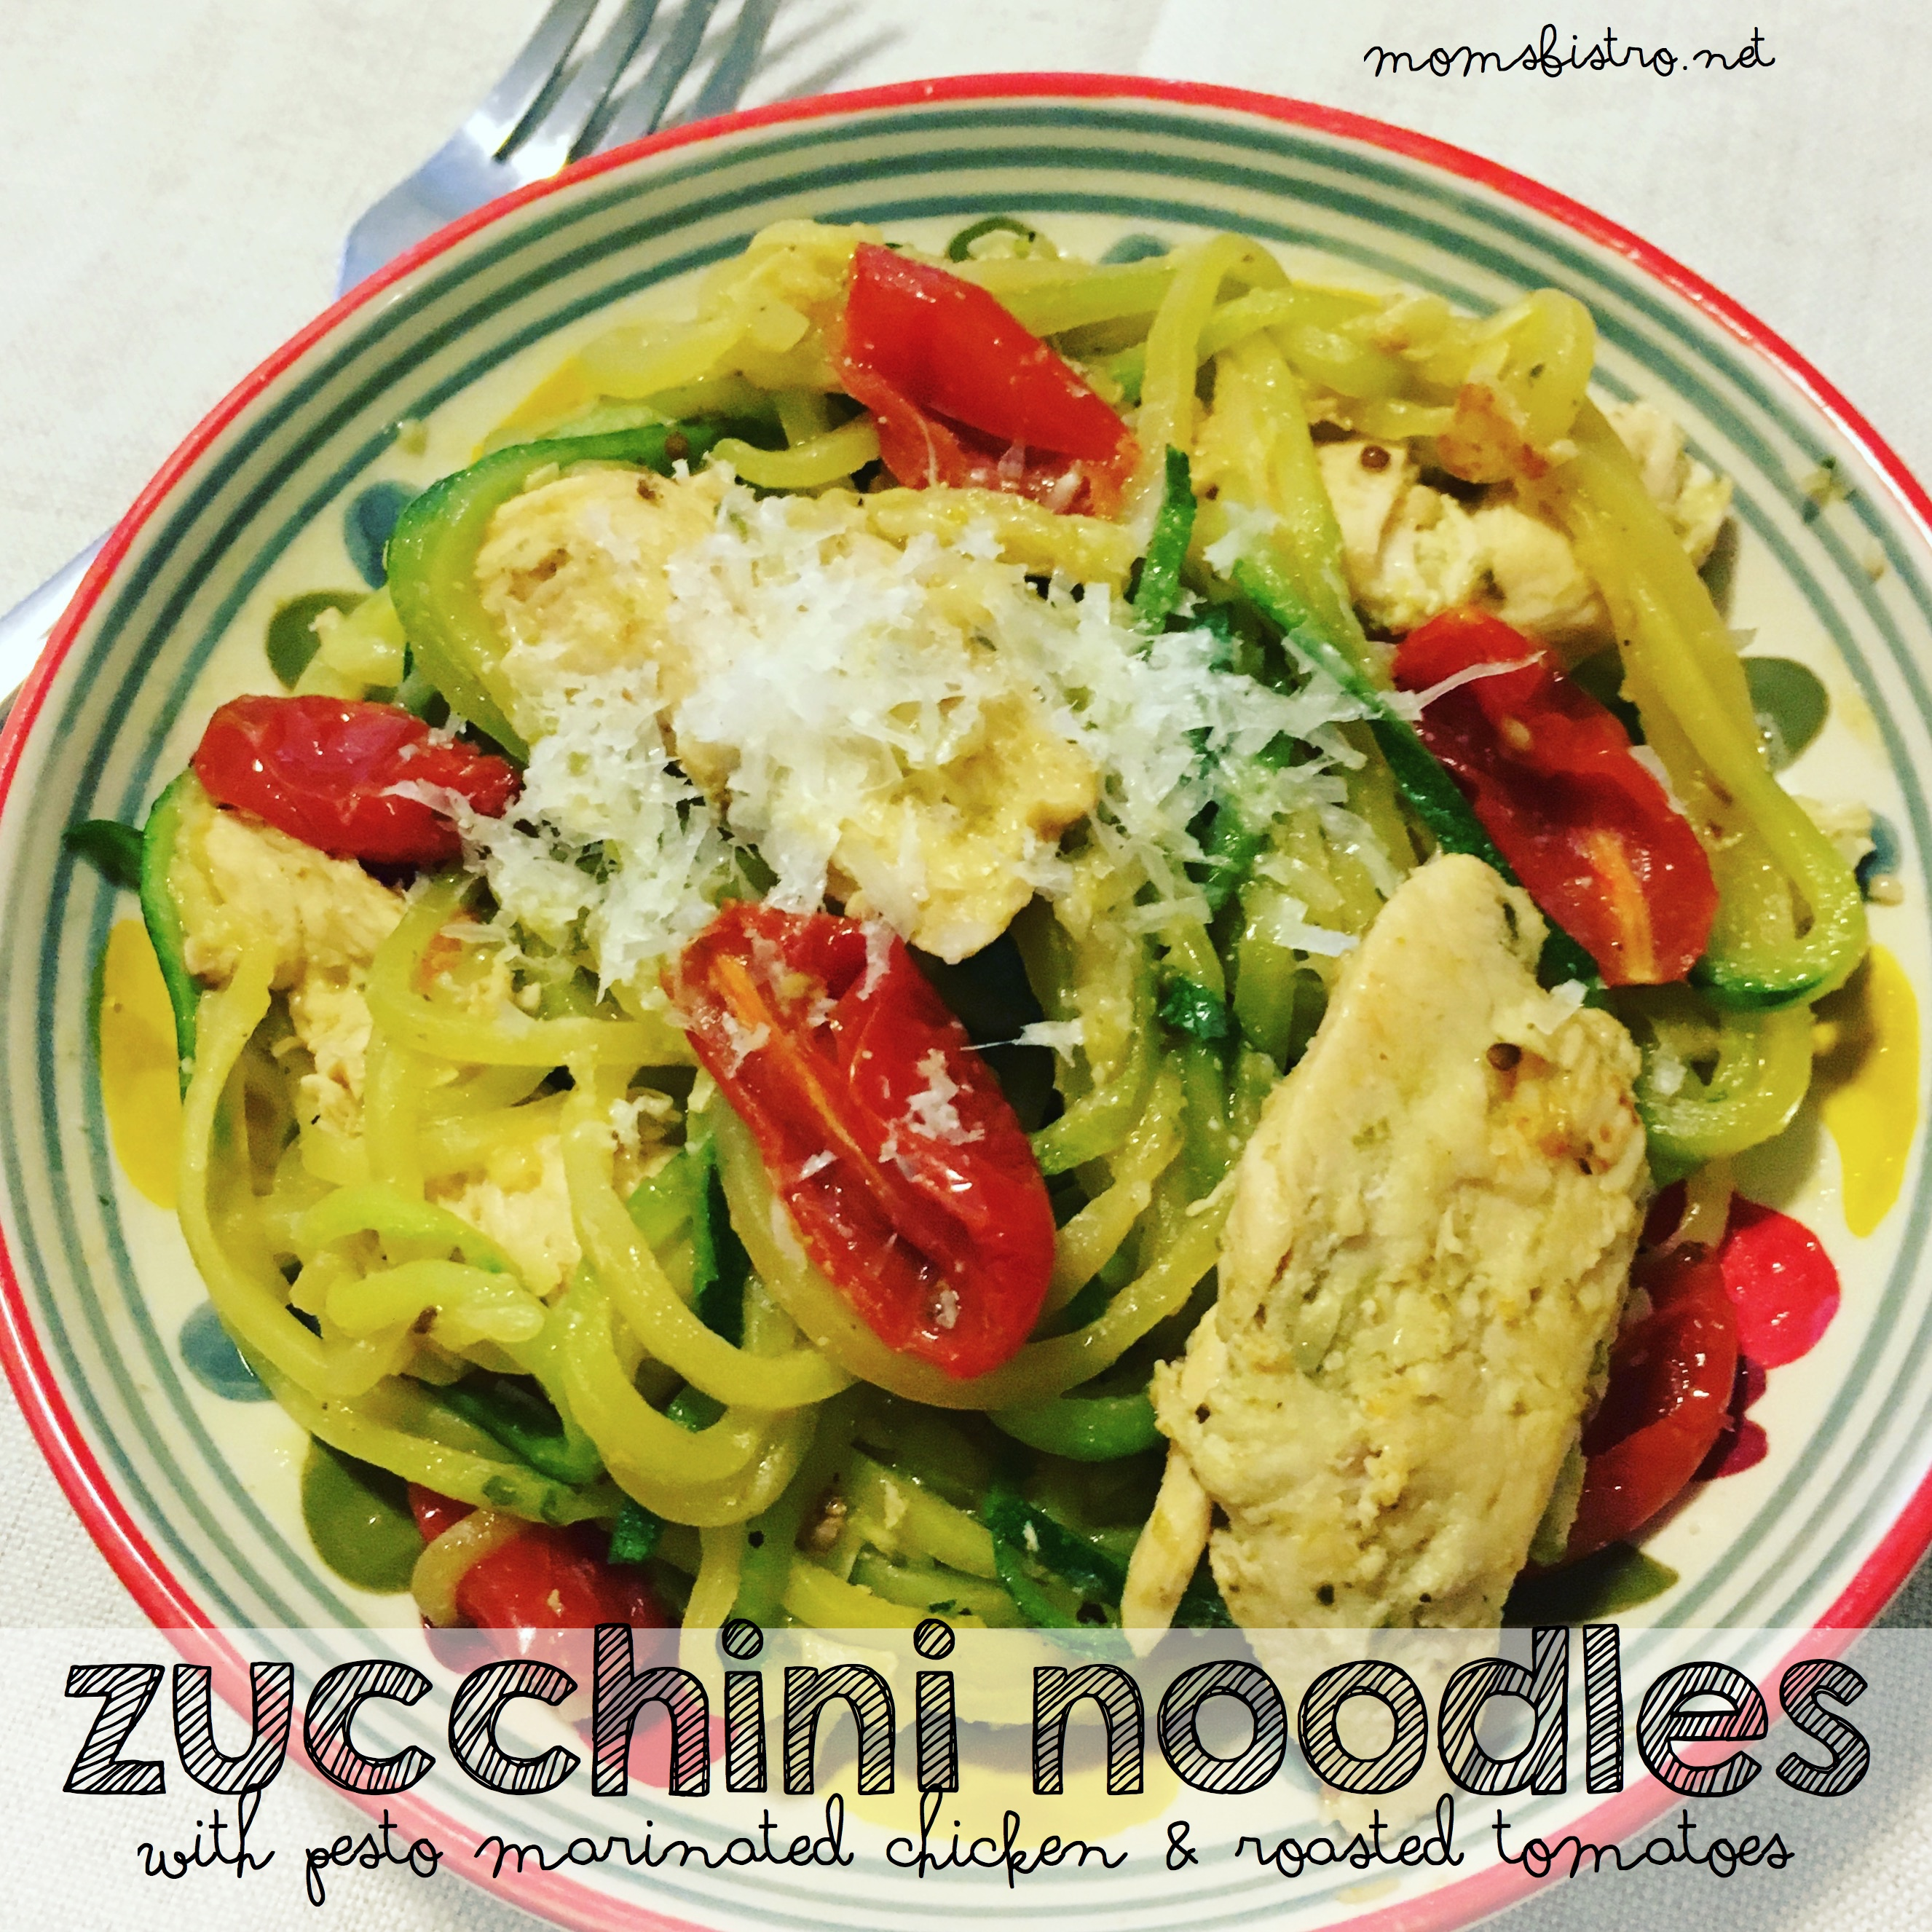 30 Minute Zucchini Noodles with Pesto Marinated Chicken and Roasted Tomatoes